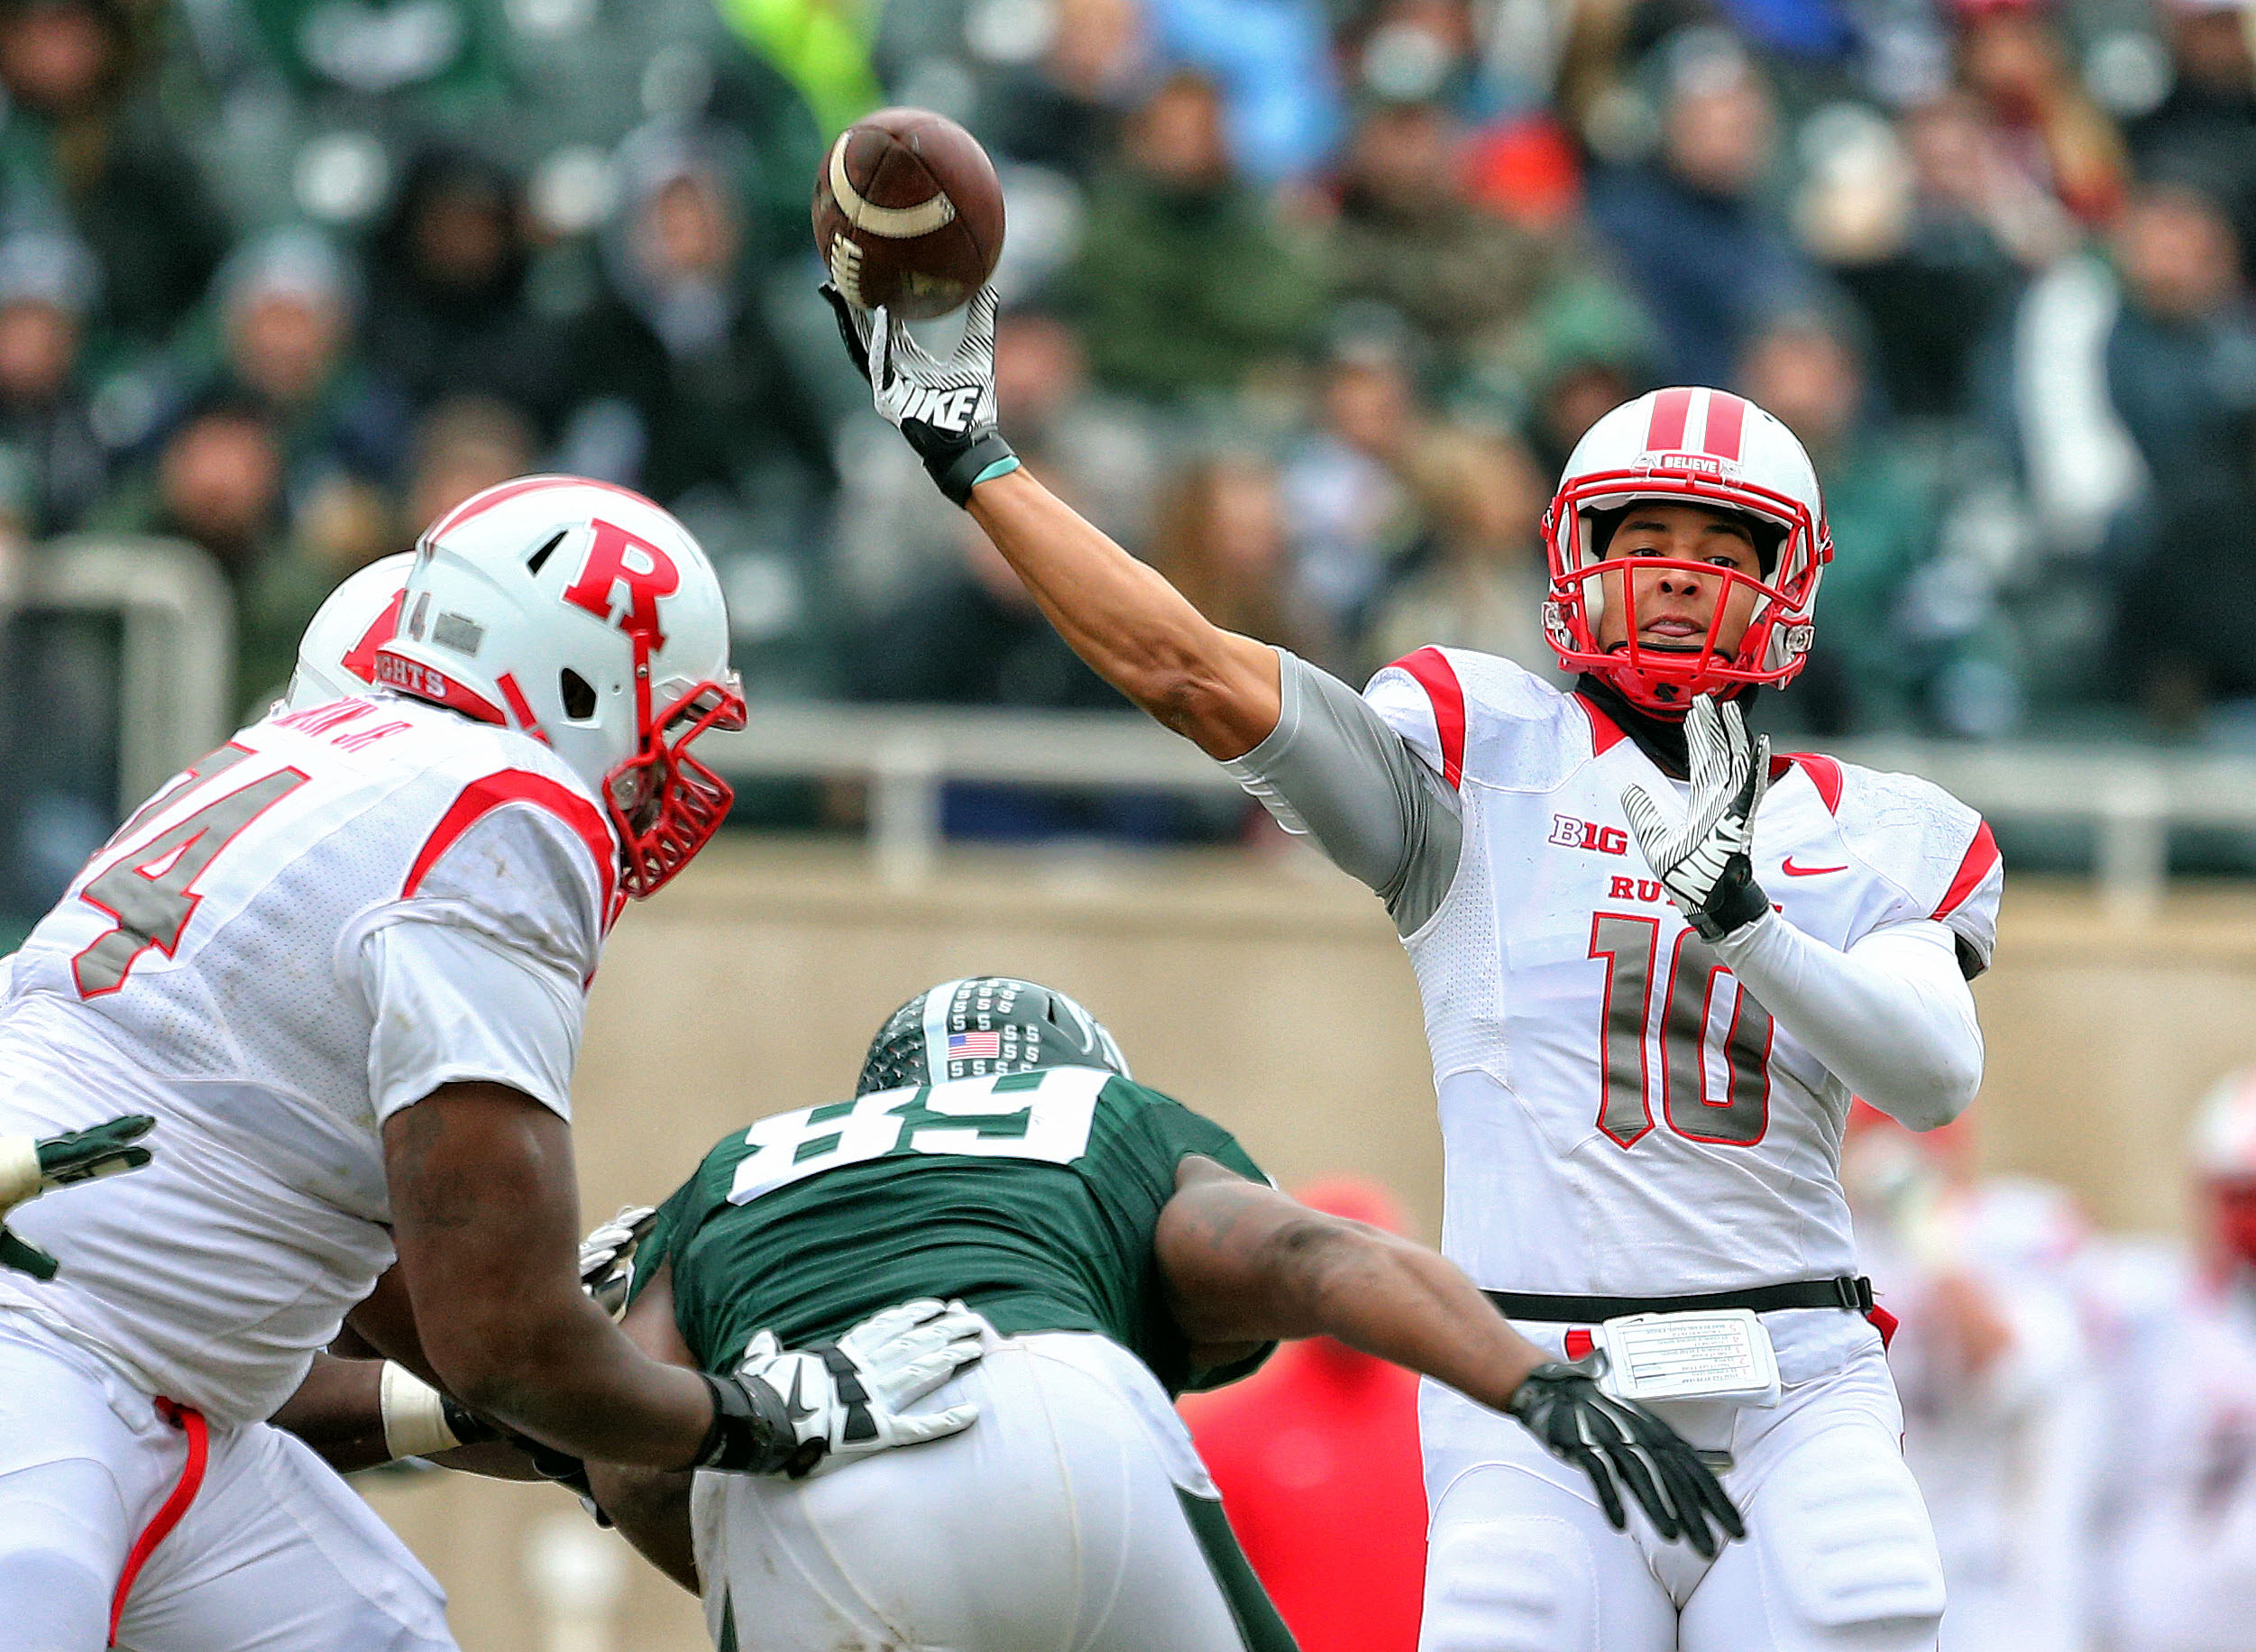 Rutgers has to replace four-year starter Gary Nova in 2015.